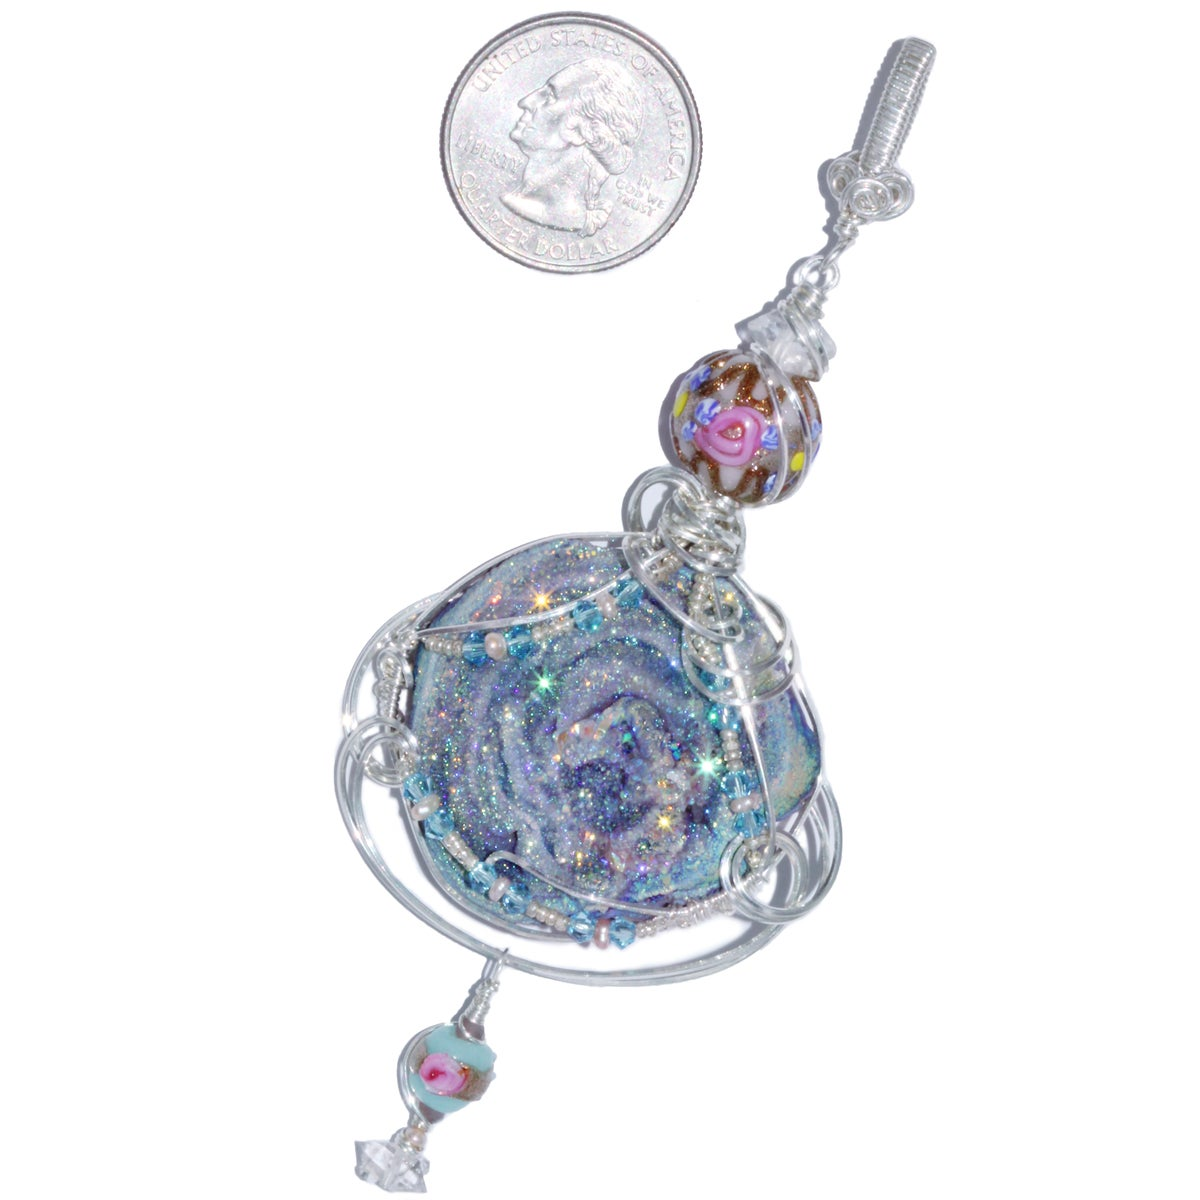 Fairy Aura Chalcedony Rosette Pendant with Wedding Cake Beads